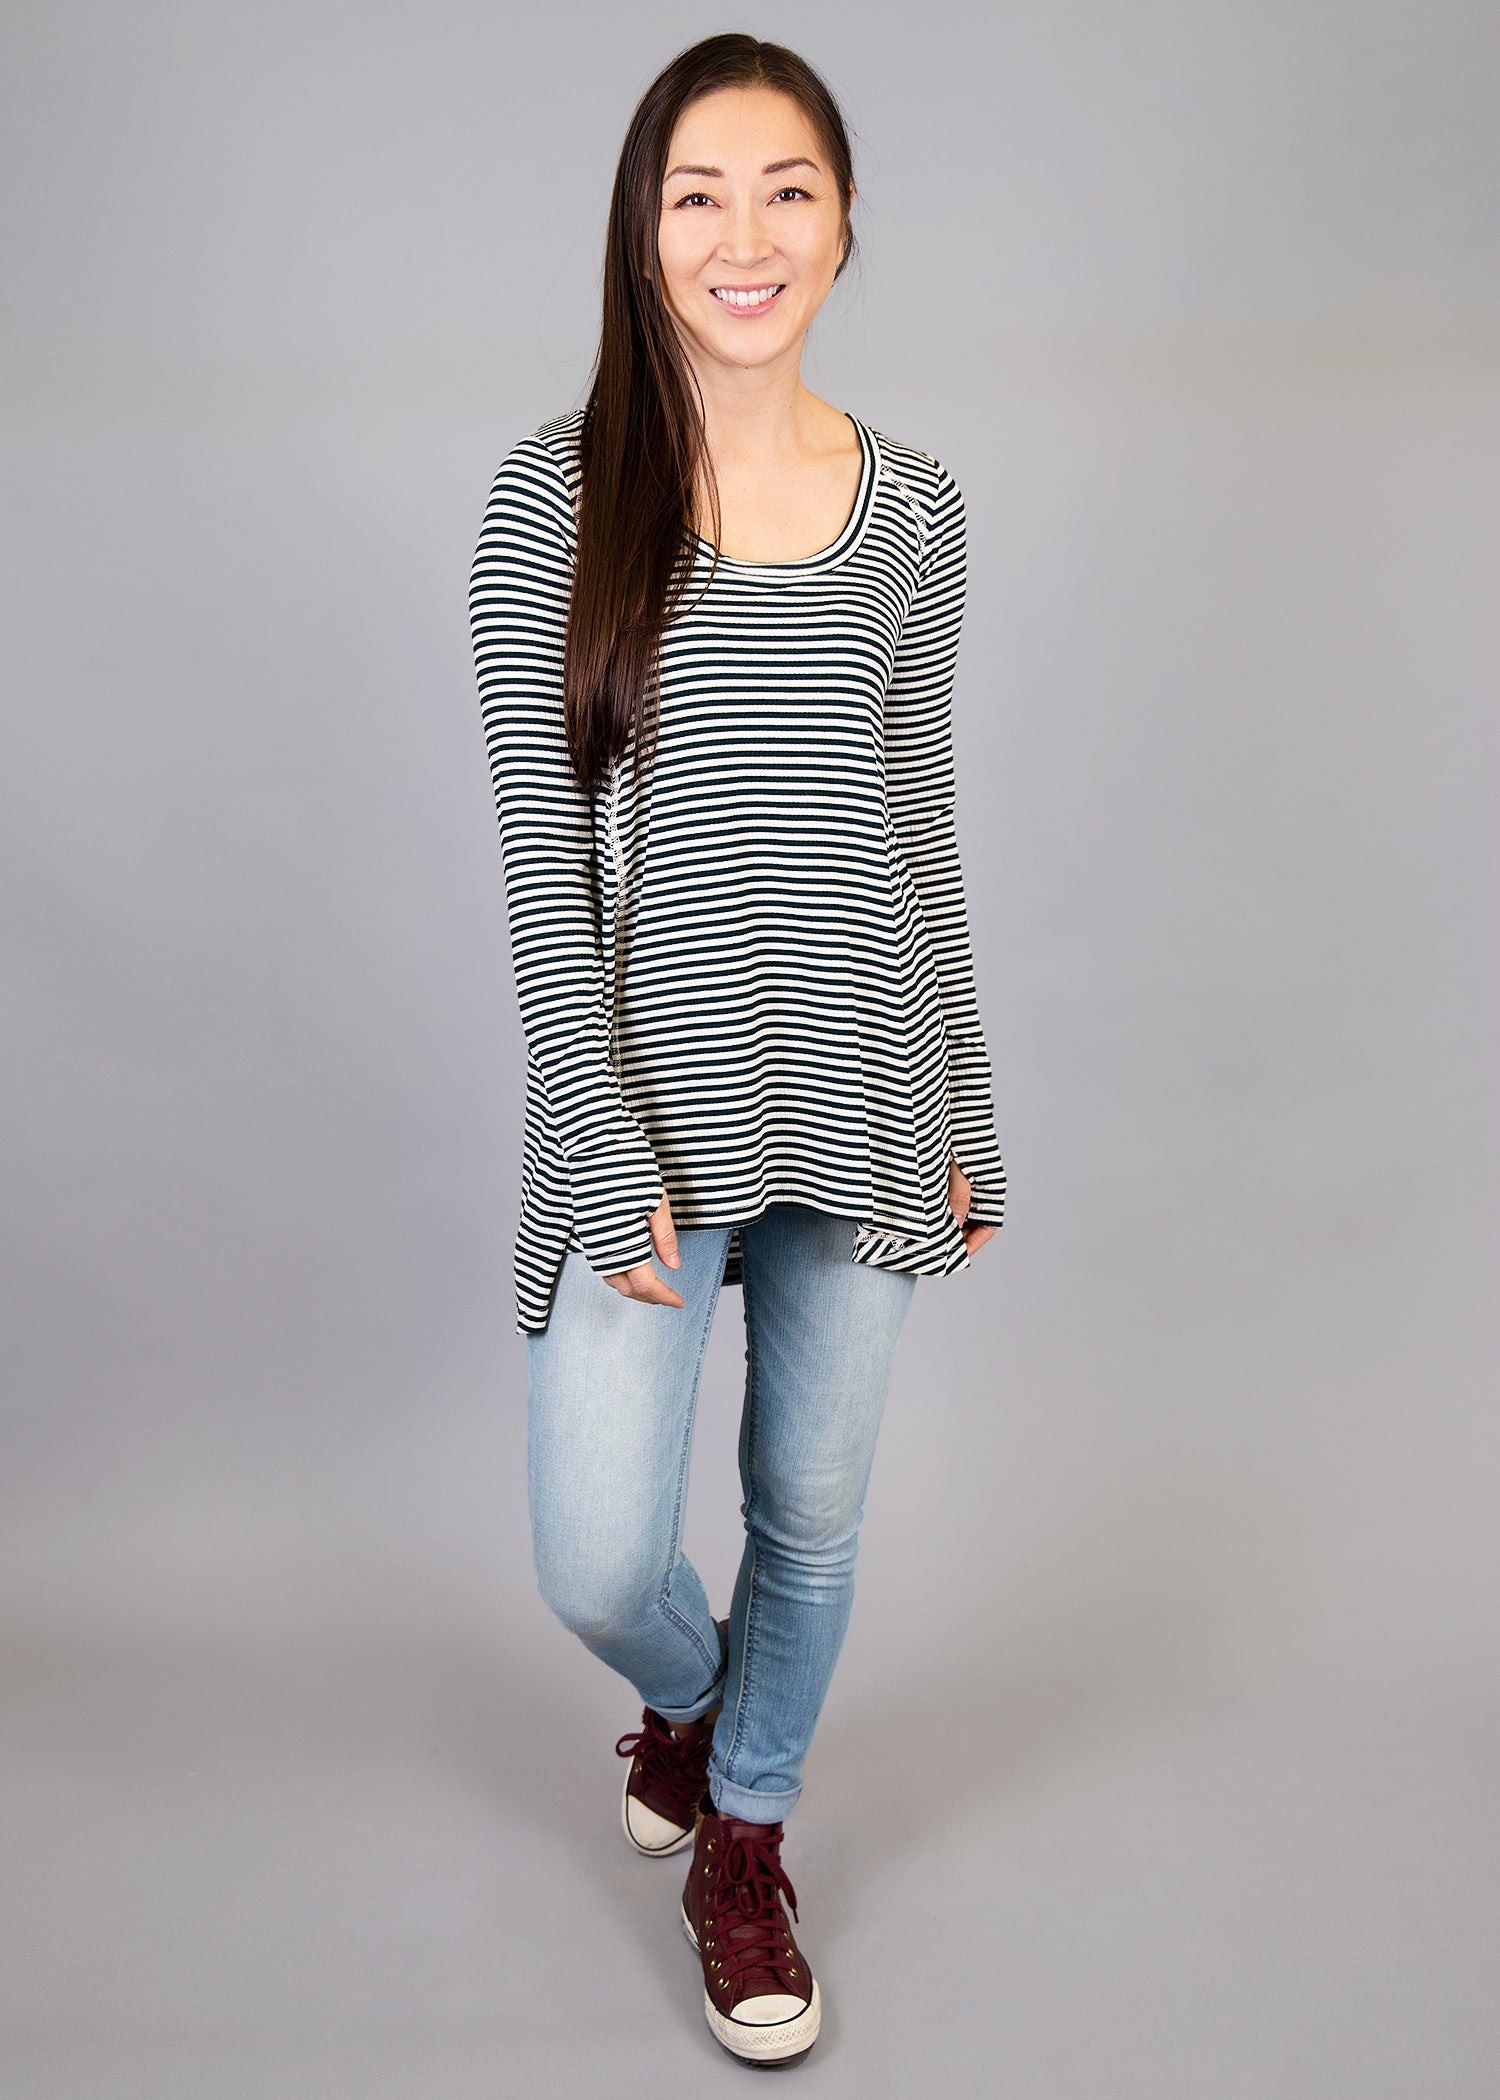 Jade Long Sleeve Top